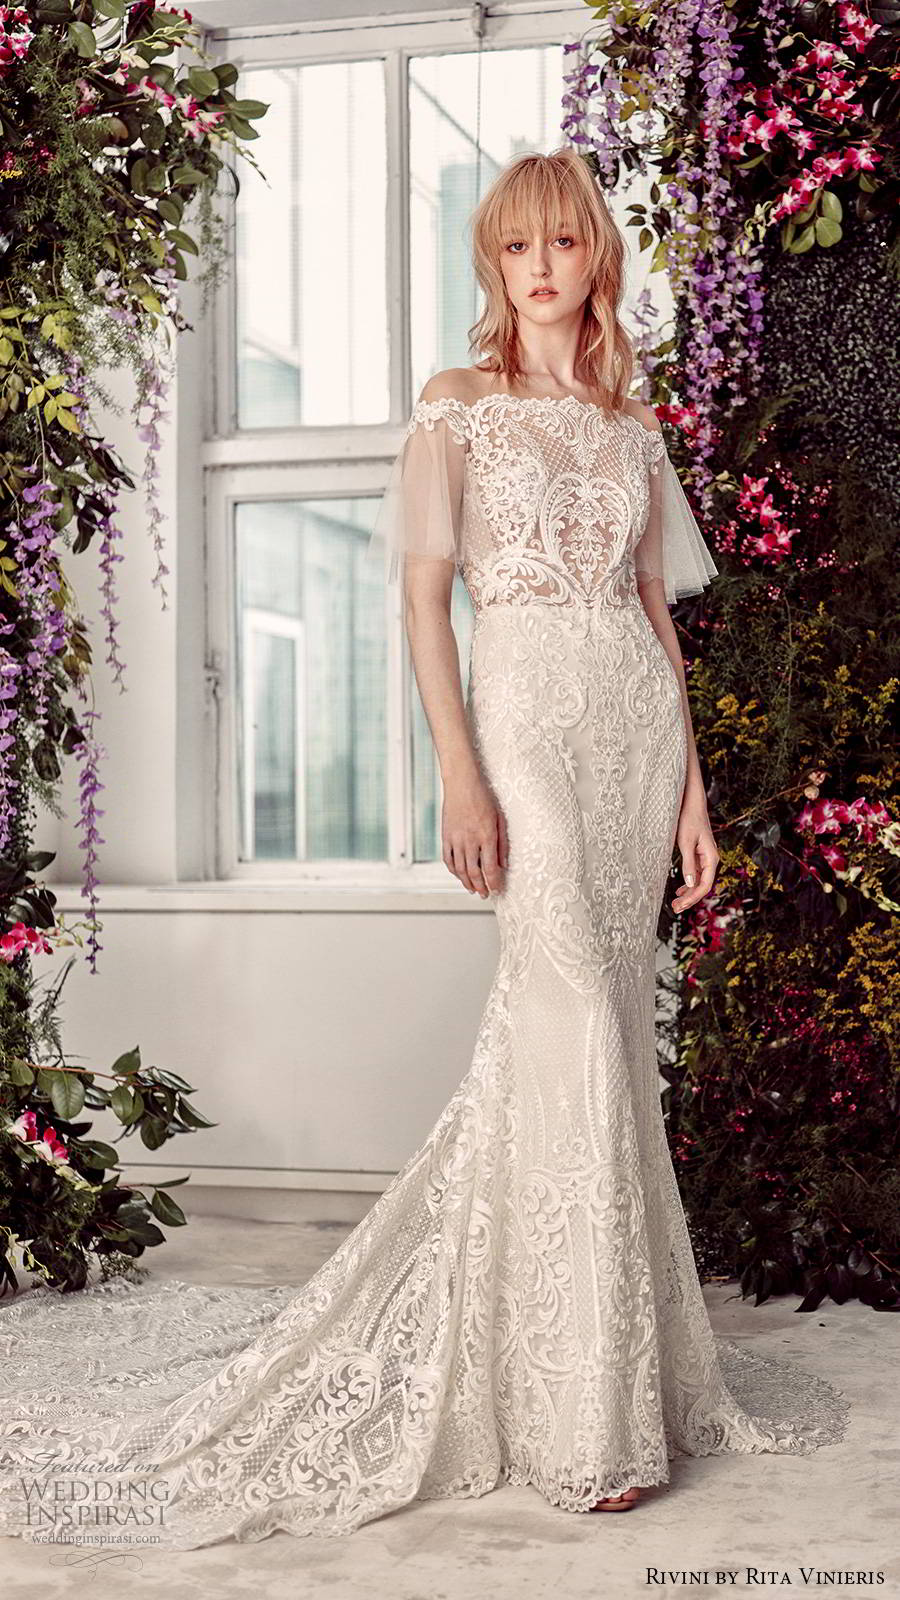 rivini by rita vinieris spring 2020 bridal sheer butterfly sleeves off shoulder straight across neckline fully embellished lace elegant sheath wedding dress illusion back chapel train (3) mv